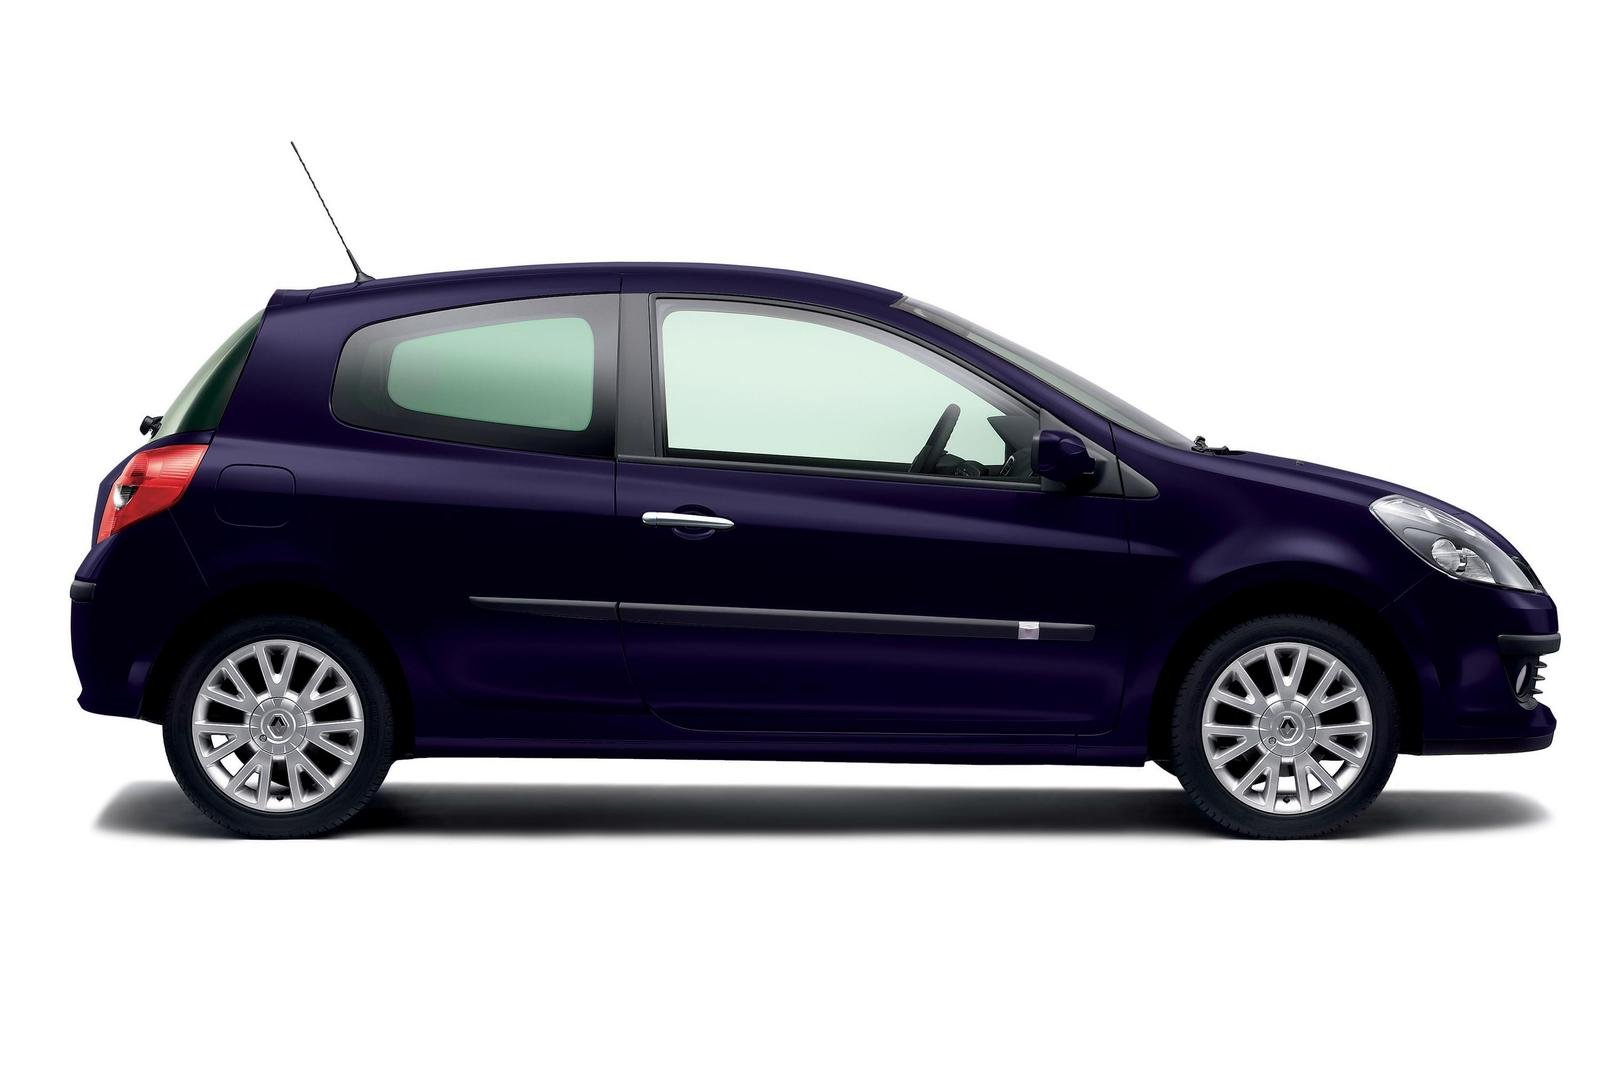 2008 renault clio exception picture 234019 car review top speed. Black Bedroom Furniture Sets. Home Design Ideas